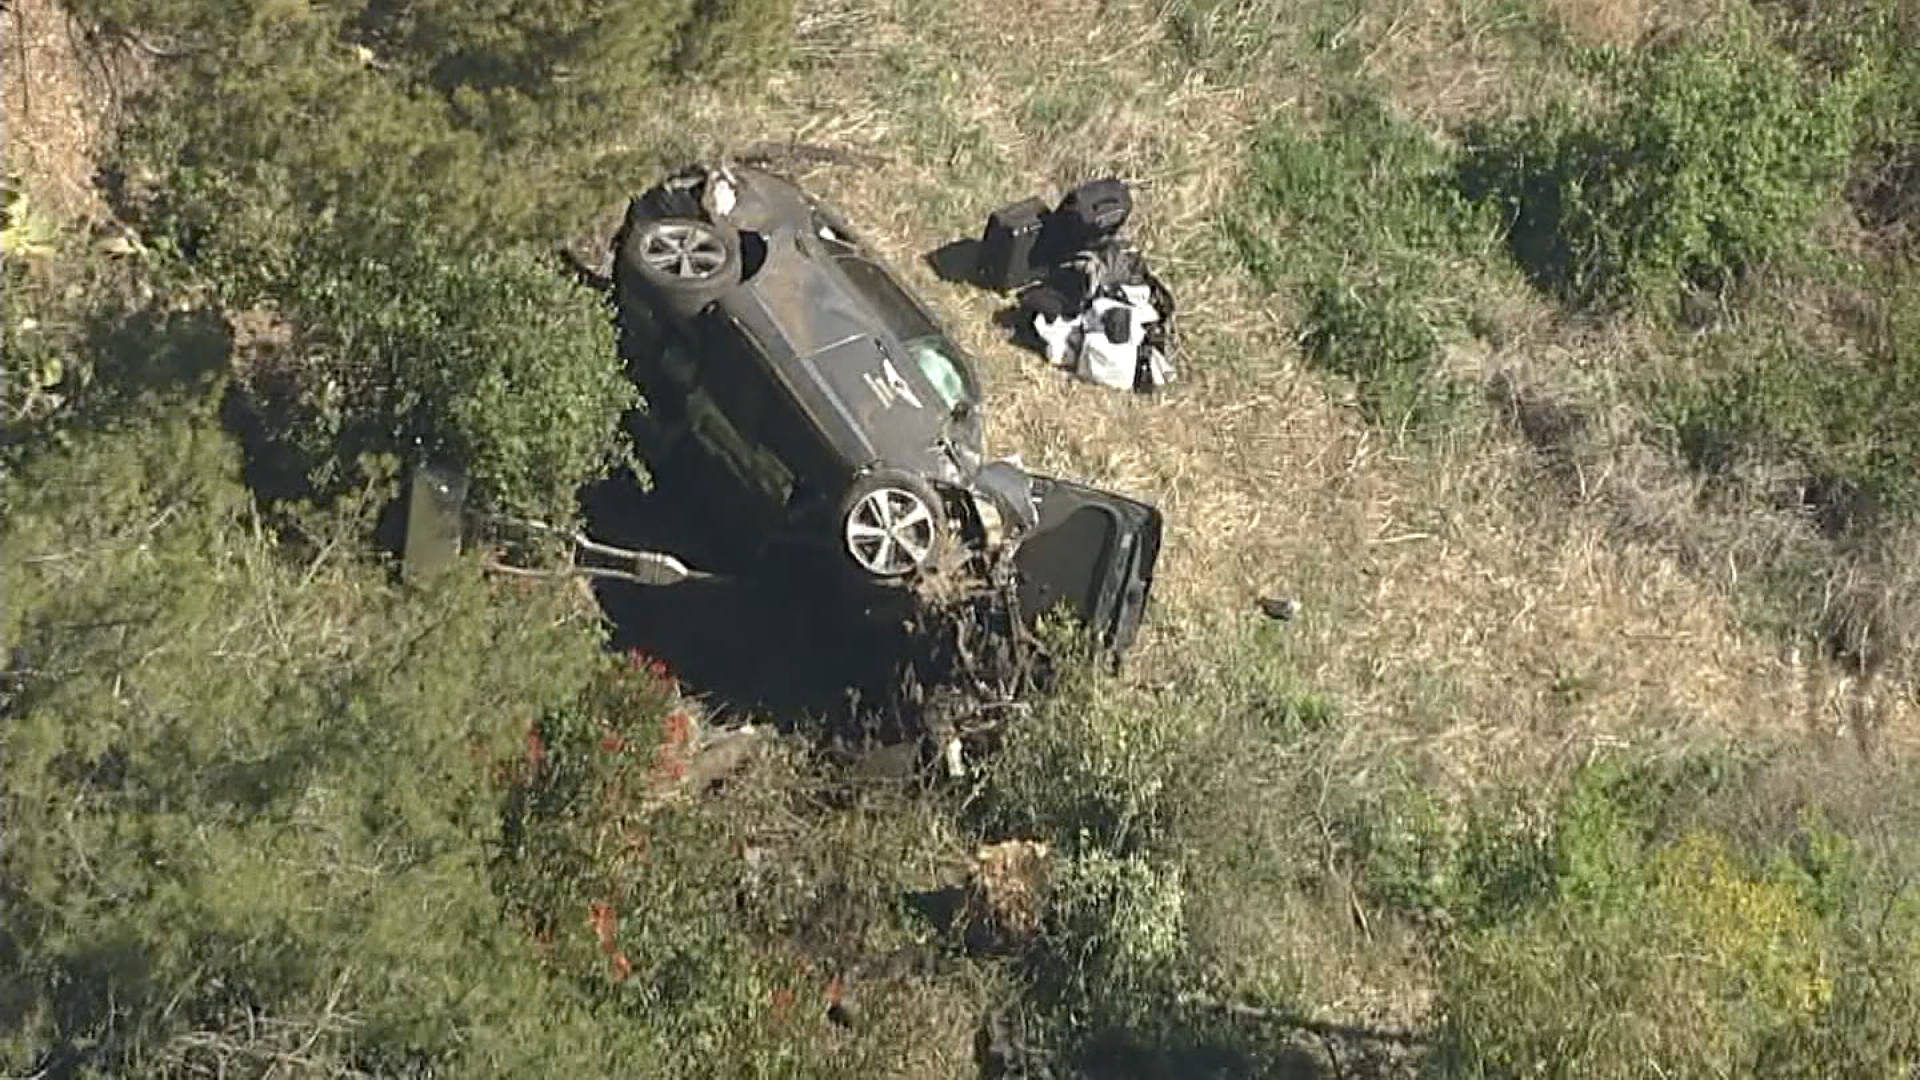 A car sits on its side at the believed car accident scene involving Tiger Woods in Rancho Palos Verdes, California, on February 23.